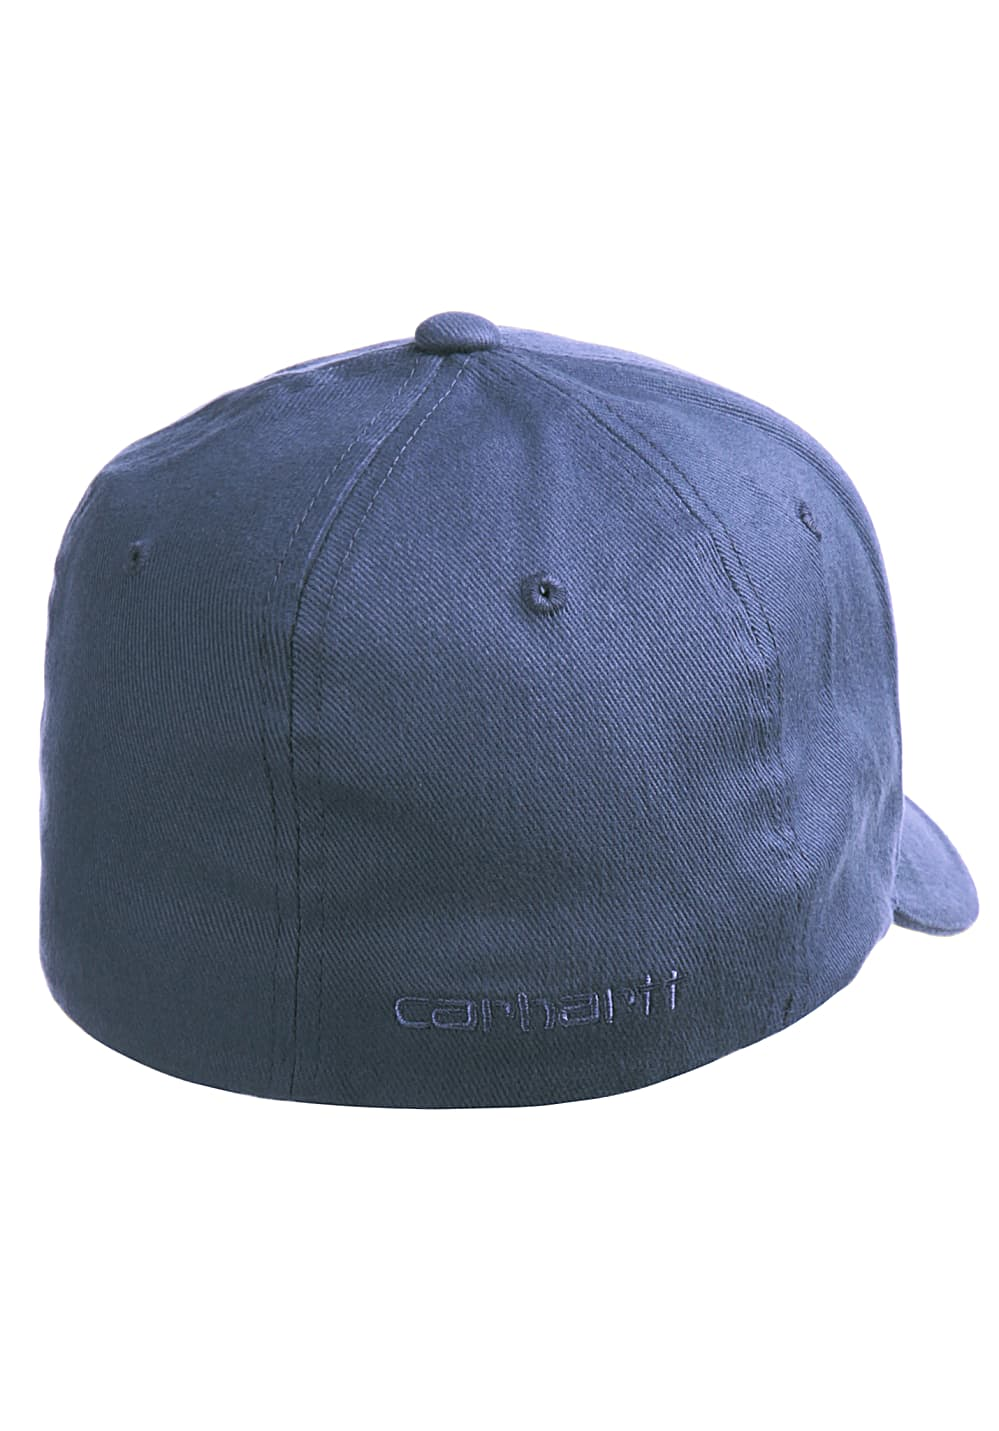 9d10d9d0d6438 Next. This product is currently out of stock. carhartt WIP. Match - Flexfit  Cap for Men. €39.95. incl.